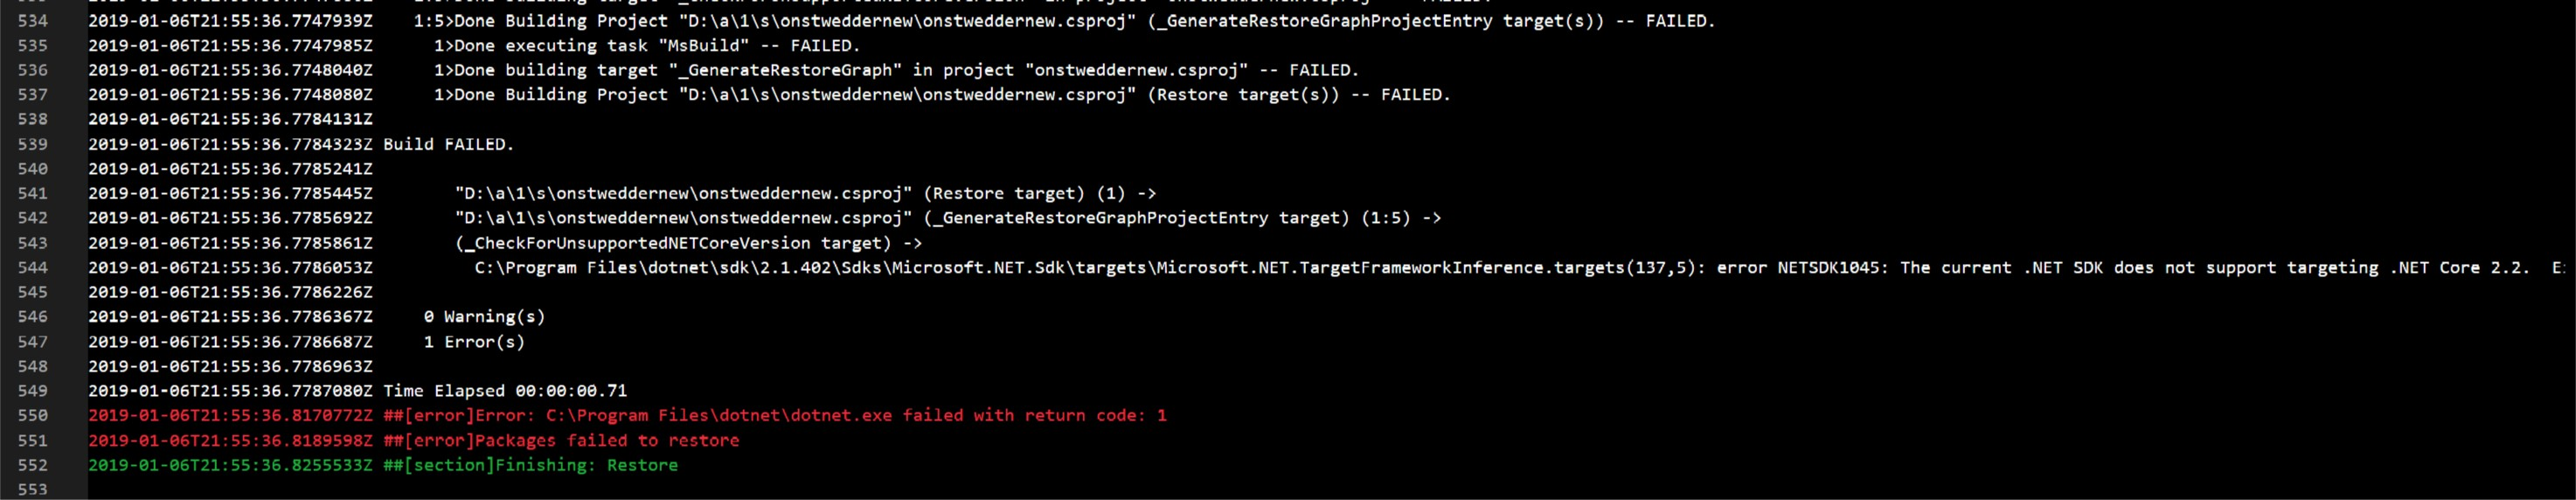 error NETSDK1045: The current .NET SDK does not support targeting .NET Core 2.2